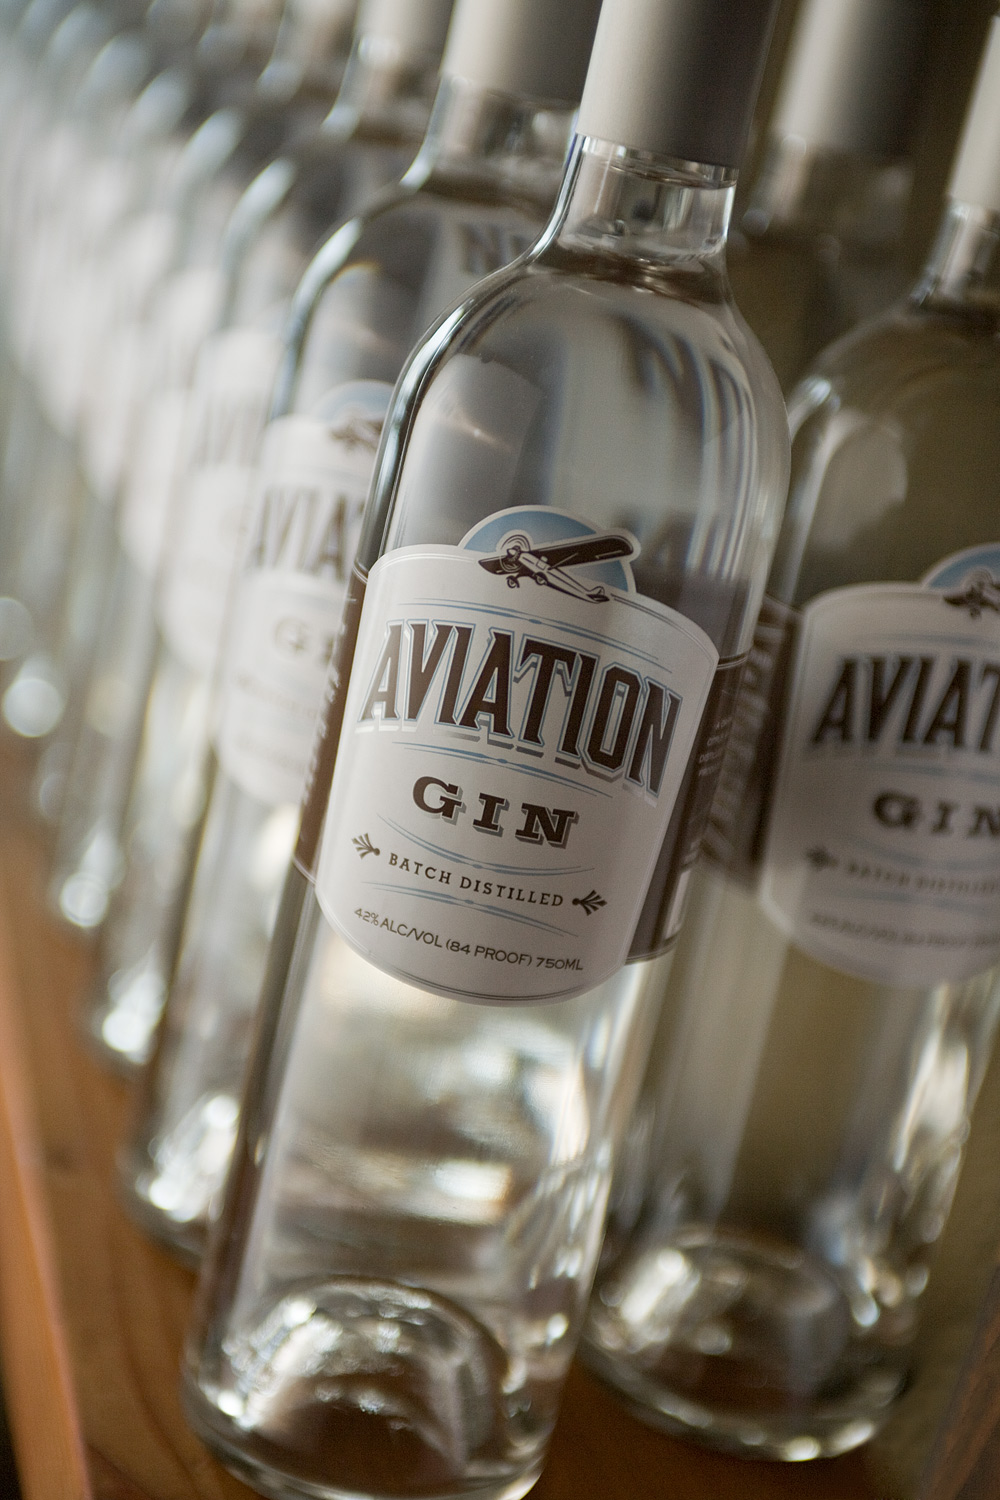 Product shot of Aviation Gin